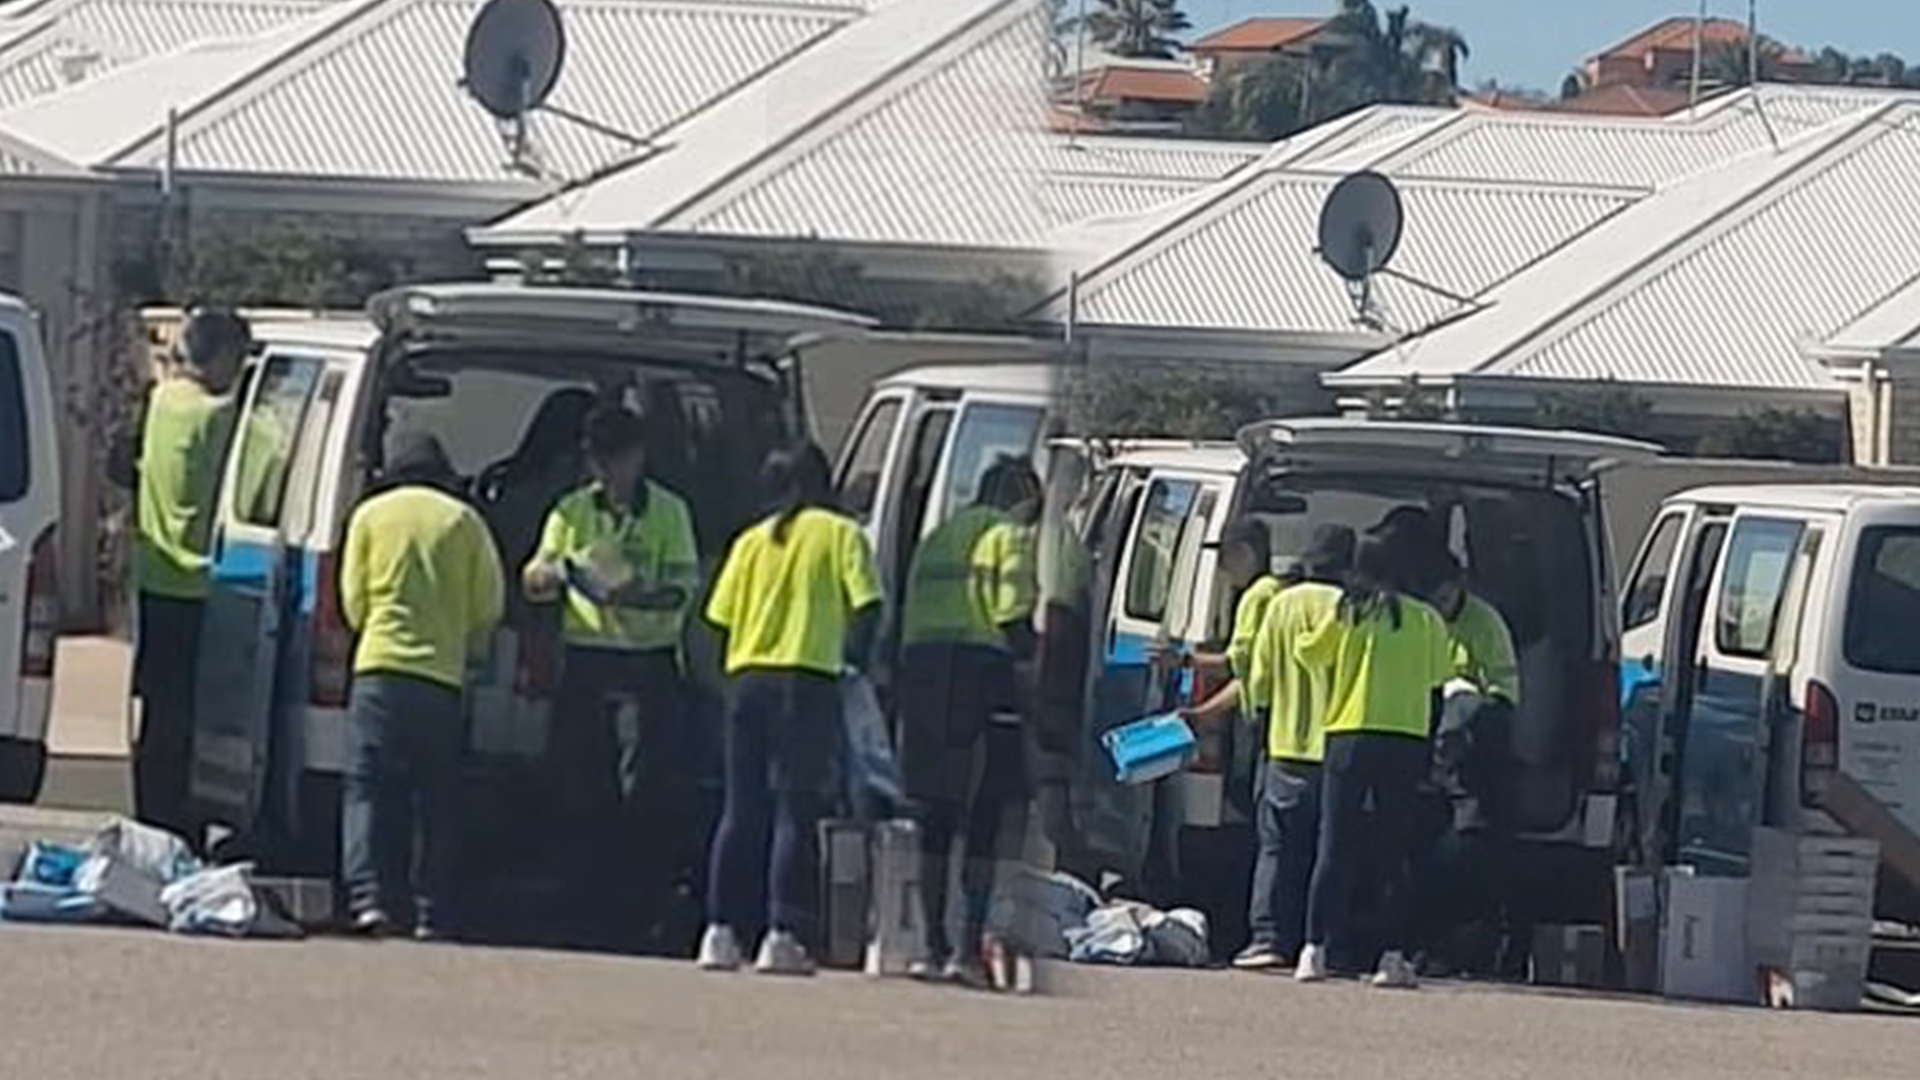 Australia Post Under Fire After Workers Are Filmed Throwing